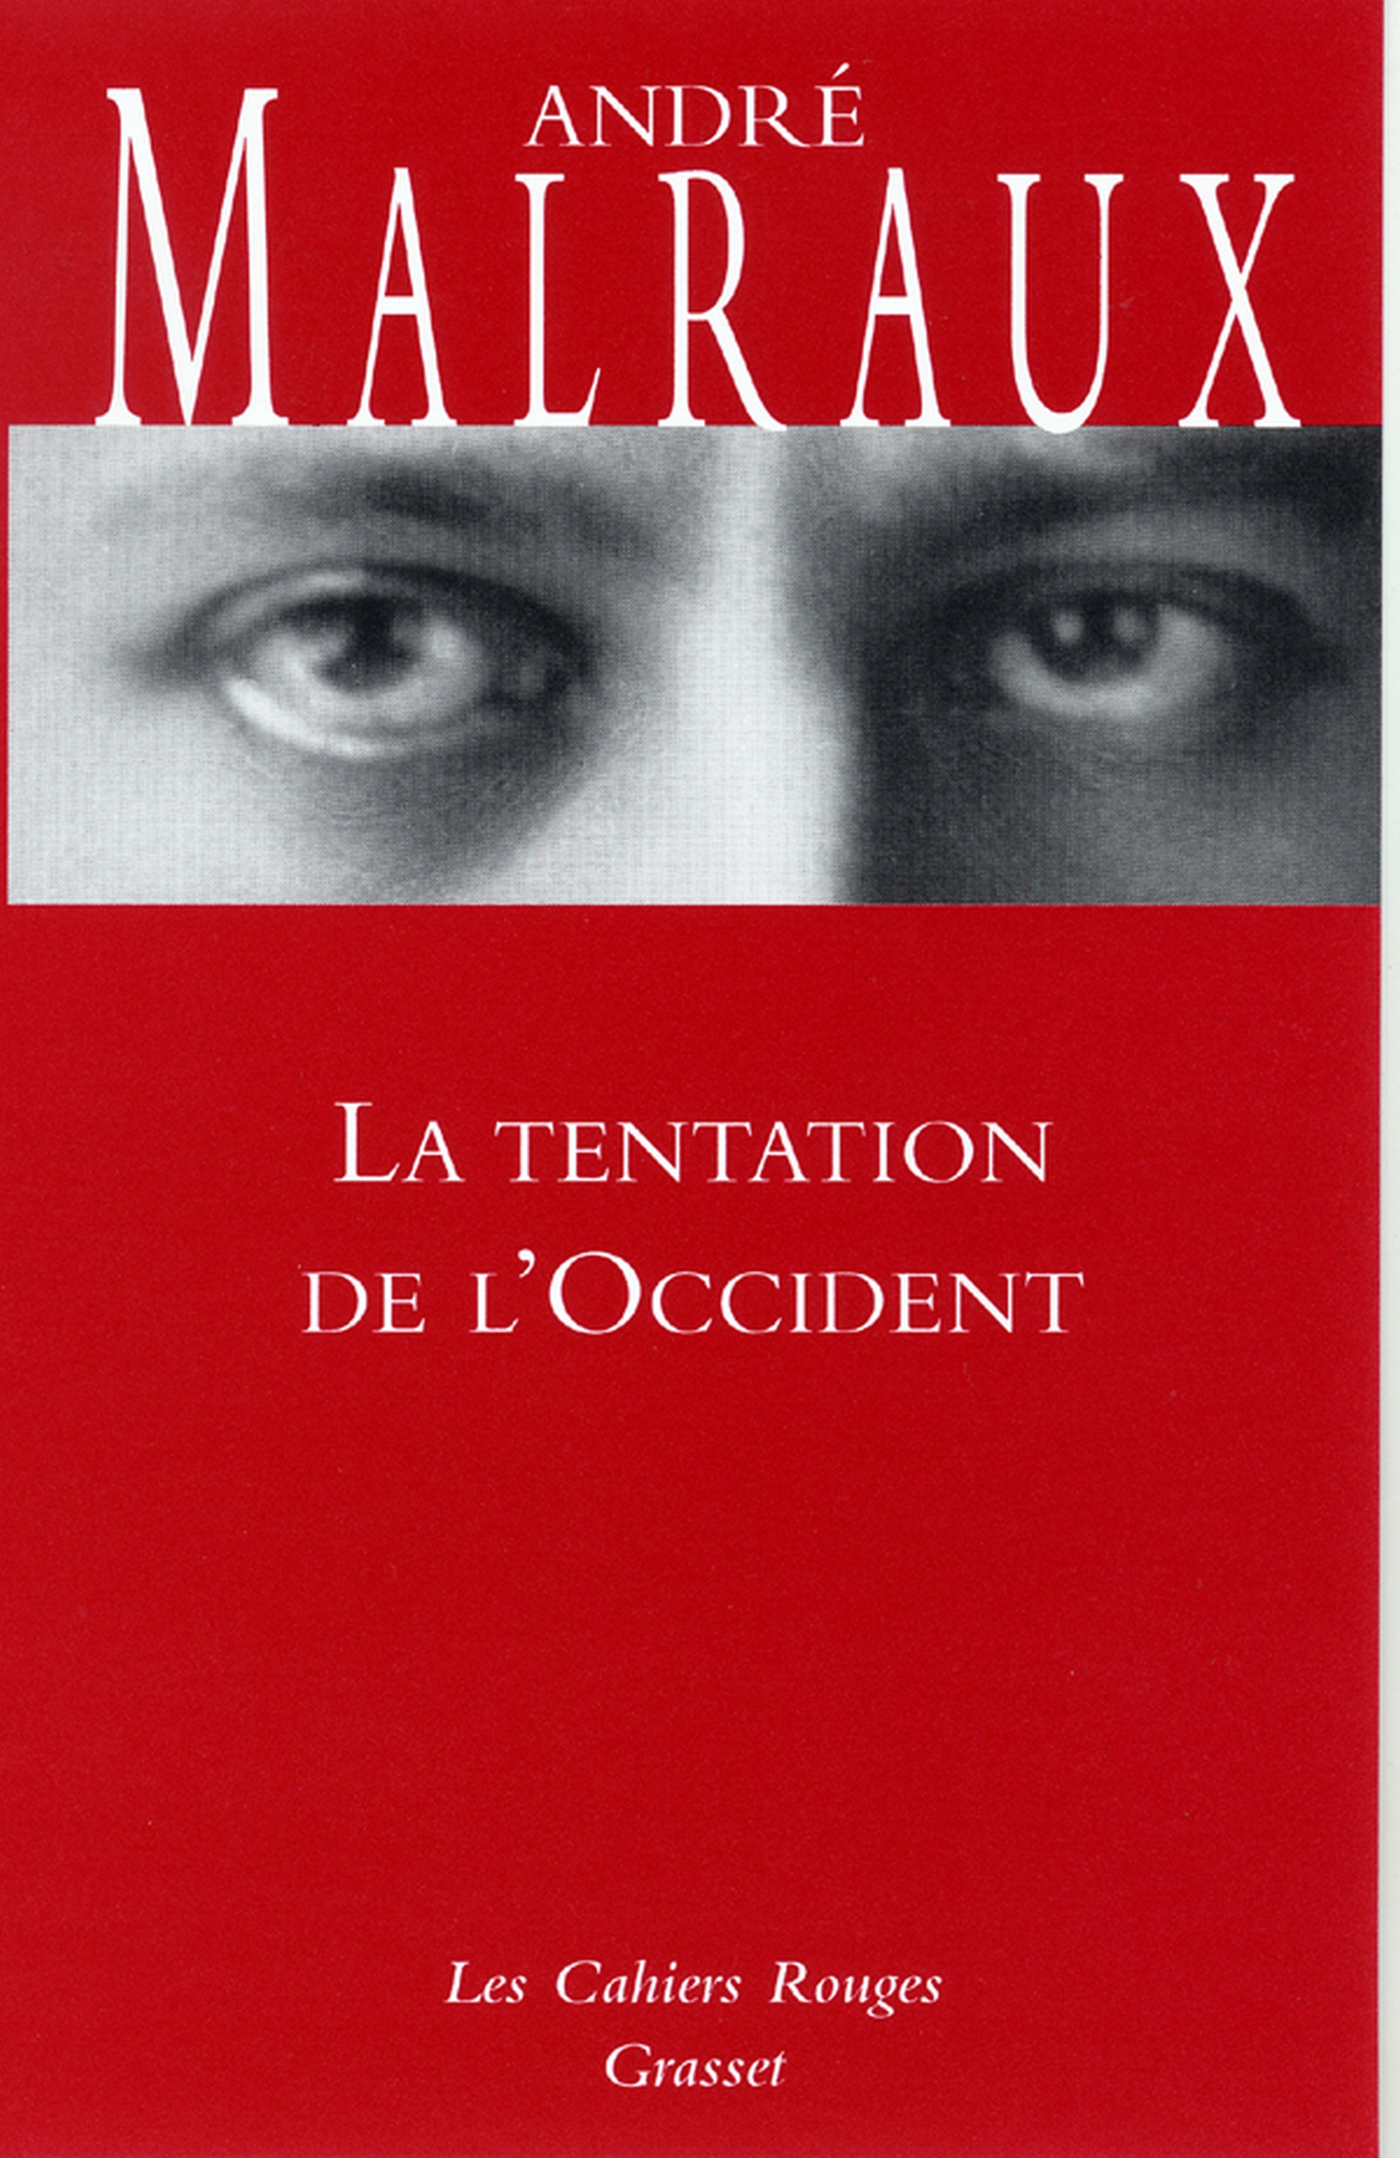 La tentation de l'occident